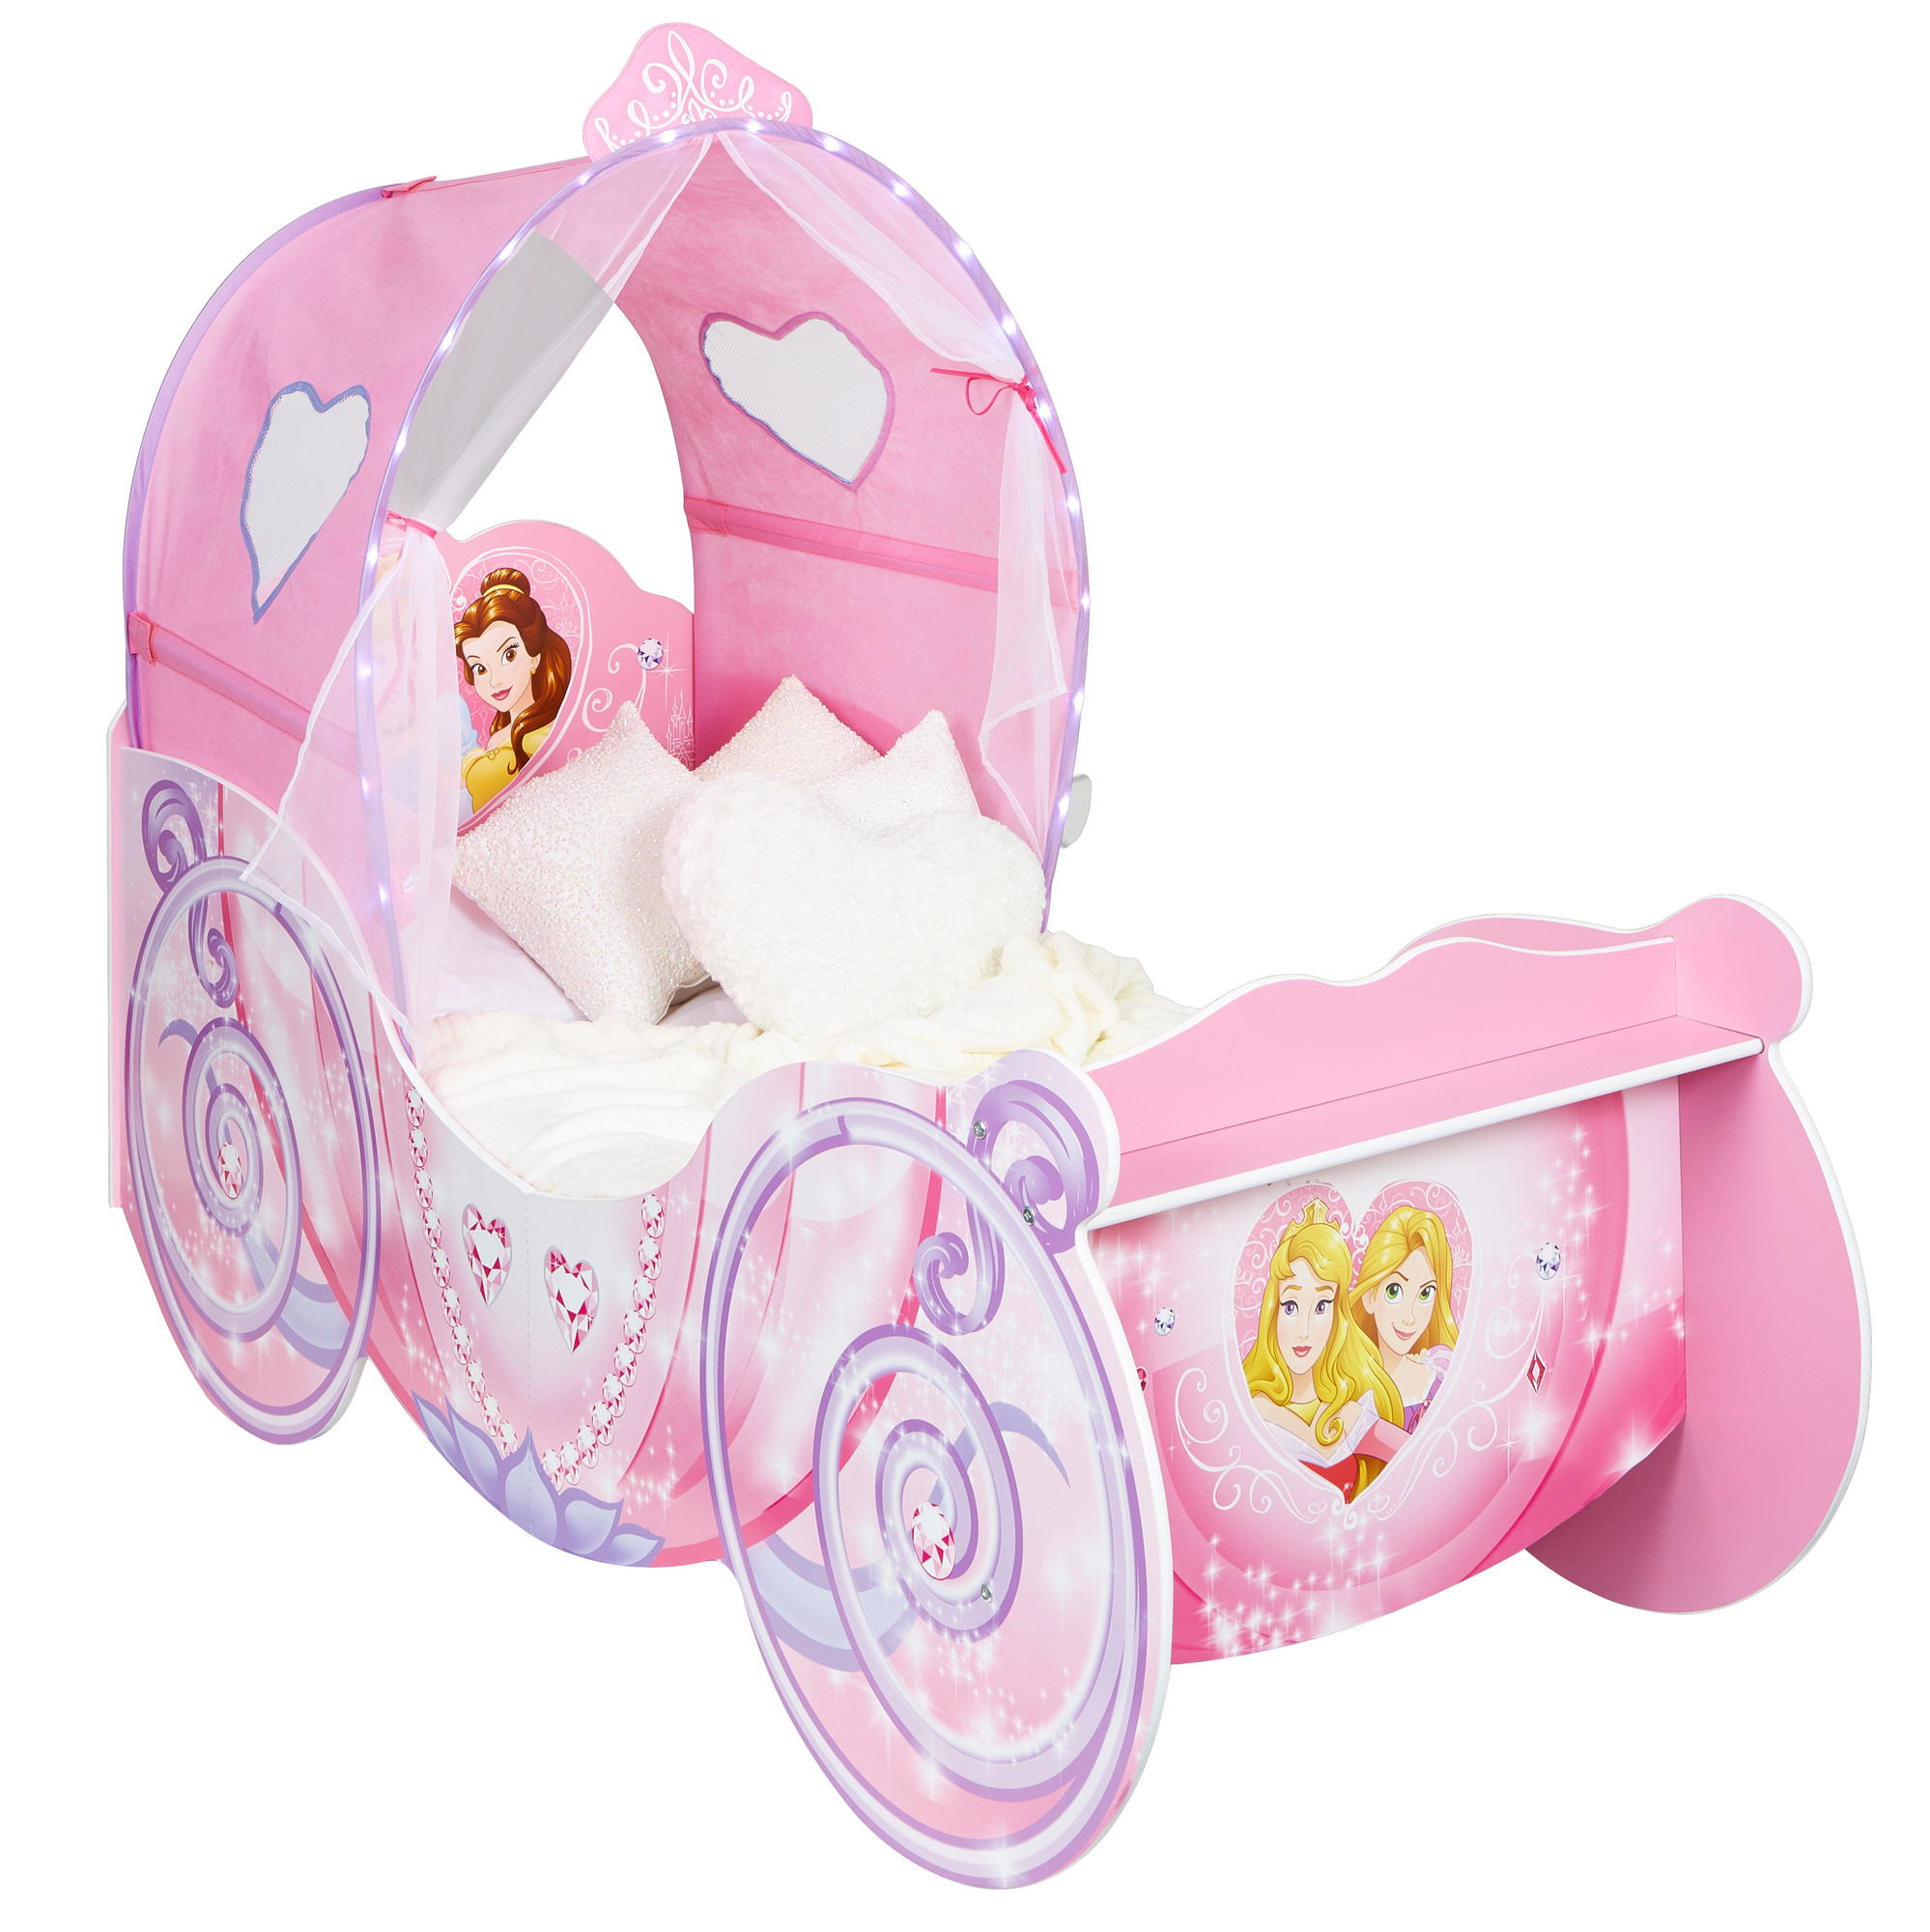 Princess carriage toddler bed - Sku Word1041 Disney Princess Carriage Toddler Bed Is Also Sometimes Listed Under The Following Manufacturer Numbers Wa452dny01em